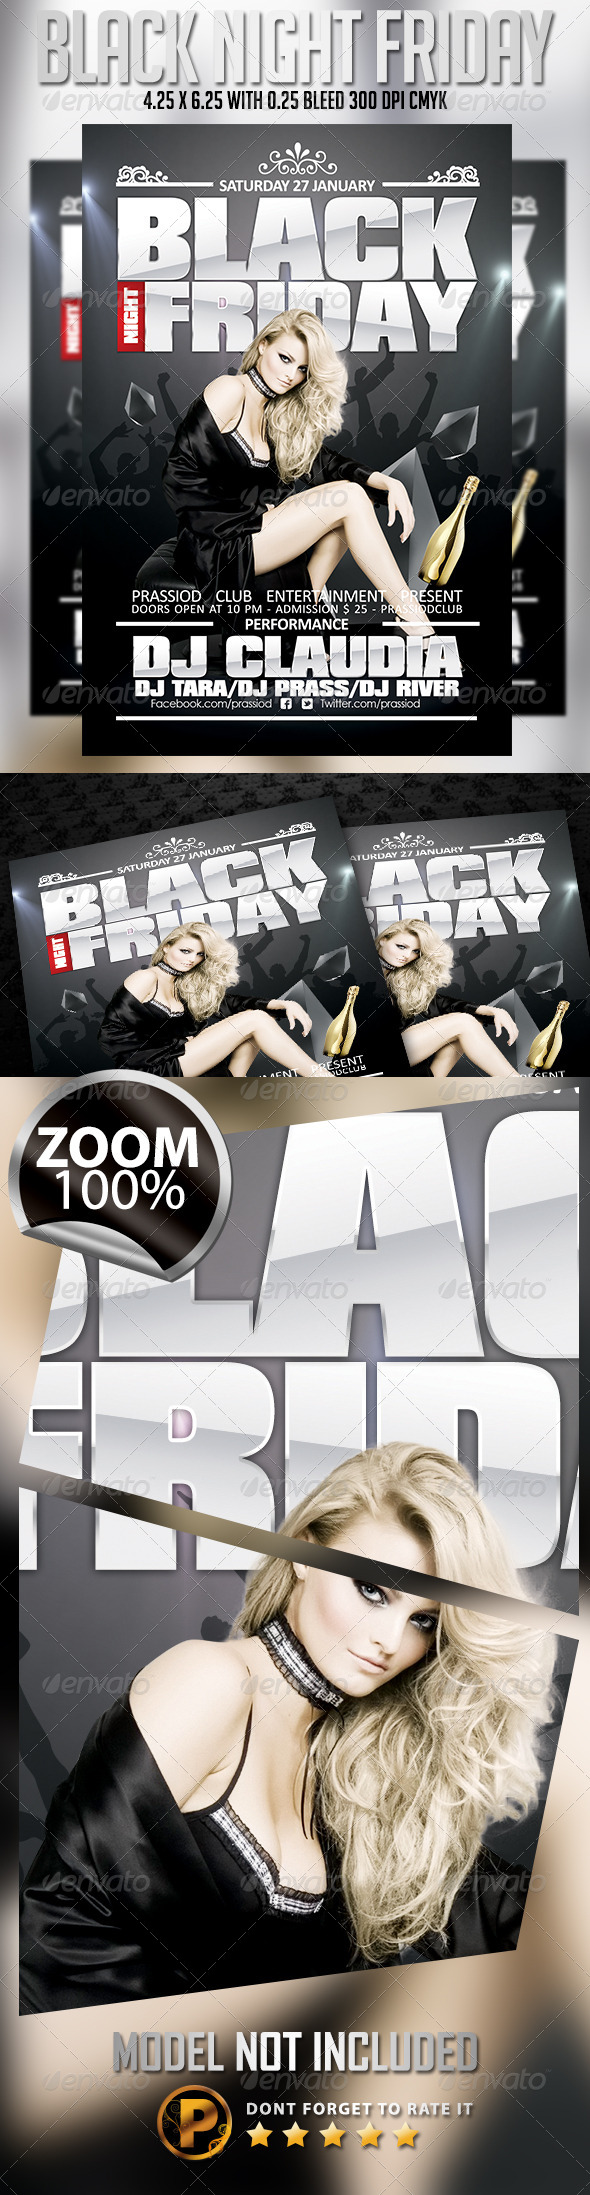 Black Night Friday Flyer Template - Clubs & Parties Events